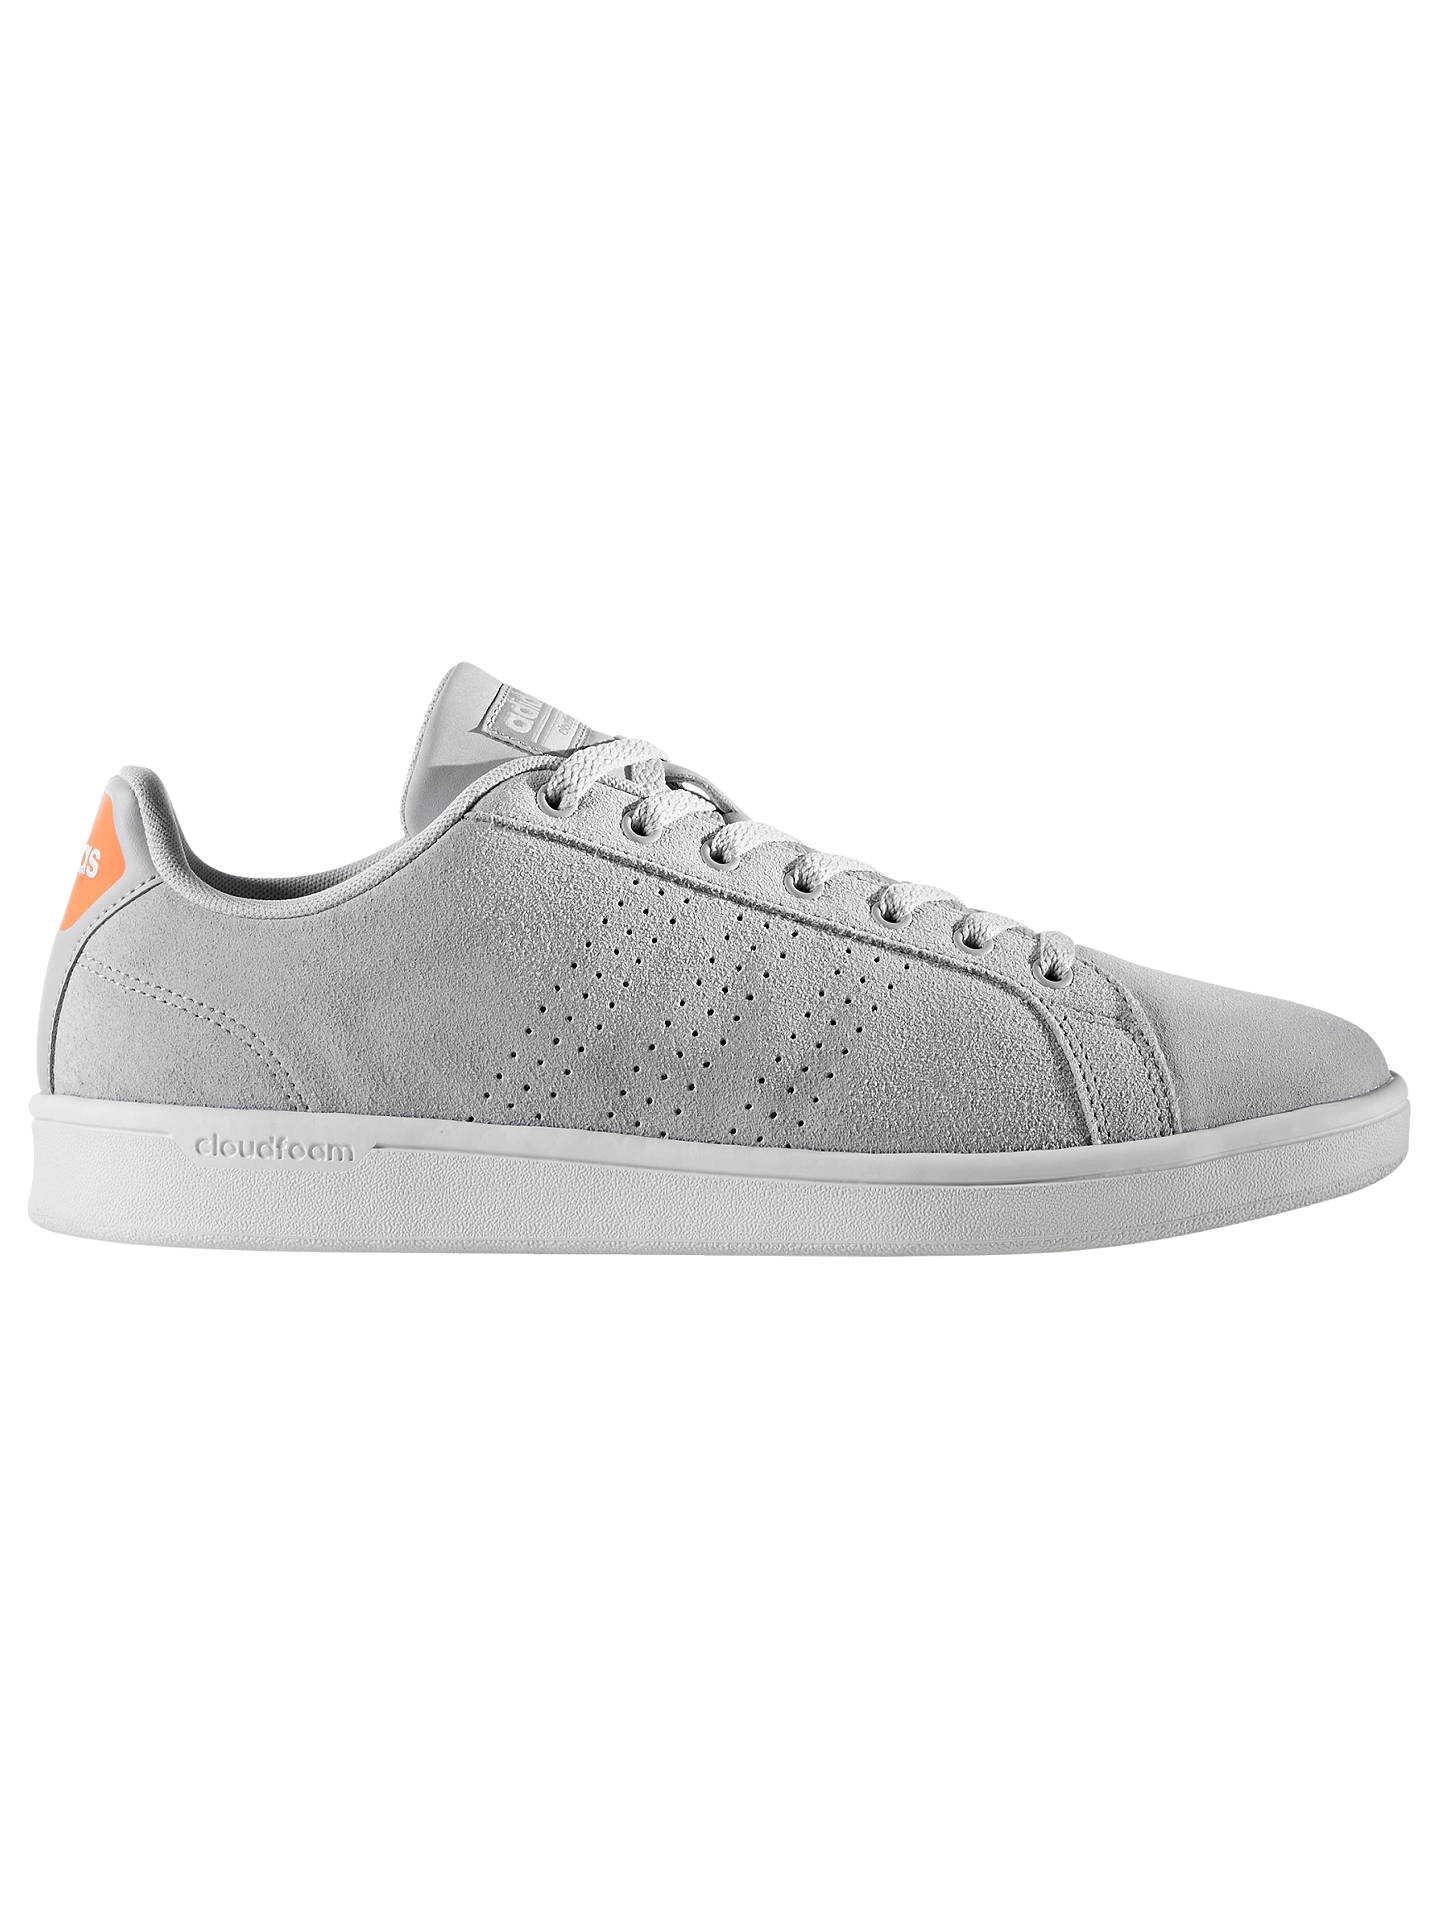 adidas Cloudfoam Advantage Clean Men's Trainers, Grey at